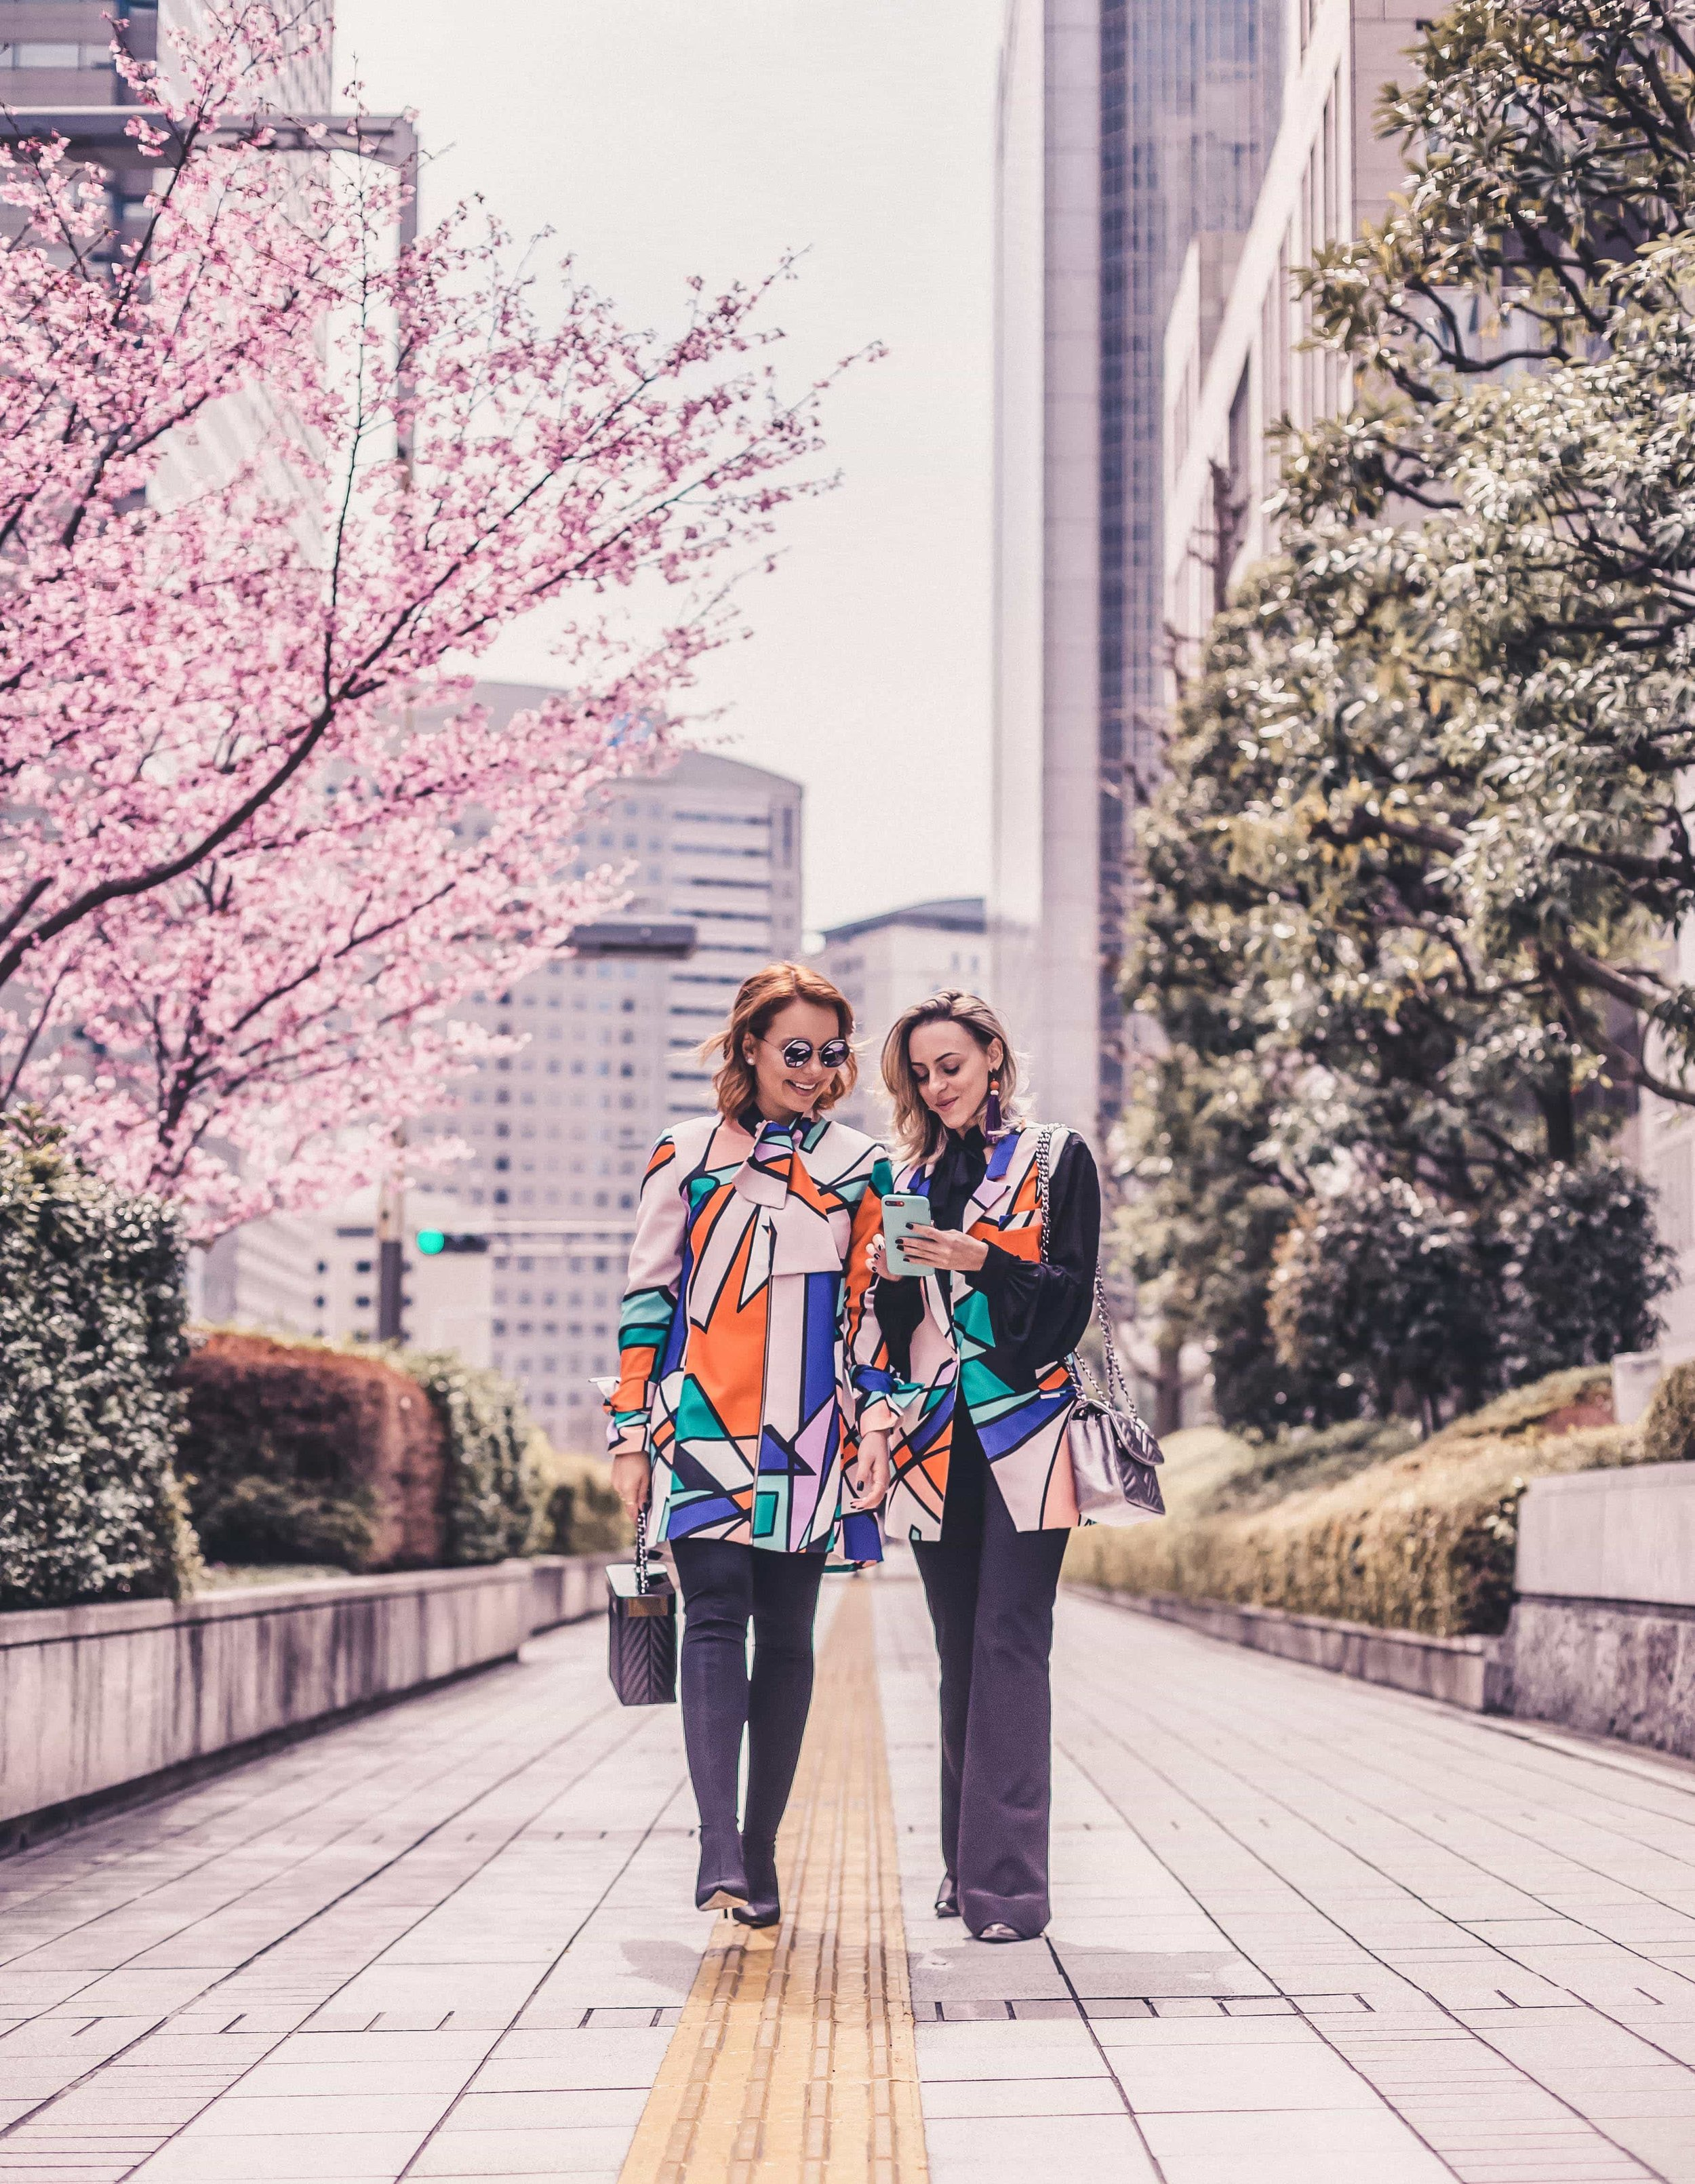 Tokyo photographer hire freelance travel casual candid Japan (13).jpg